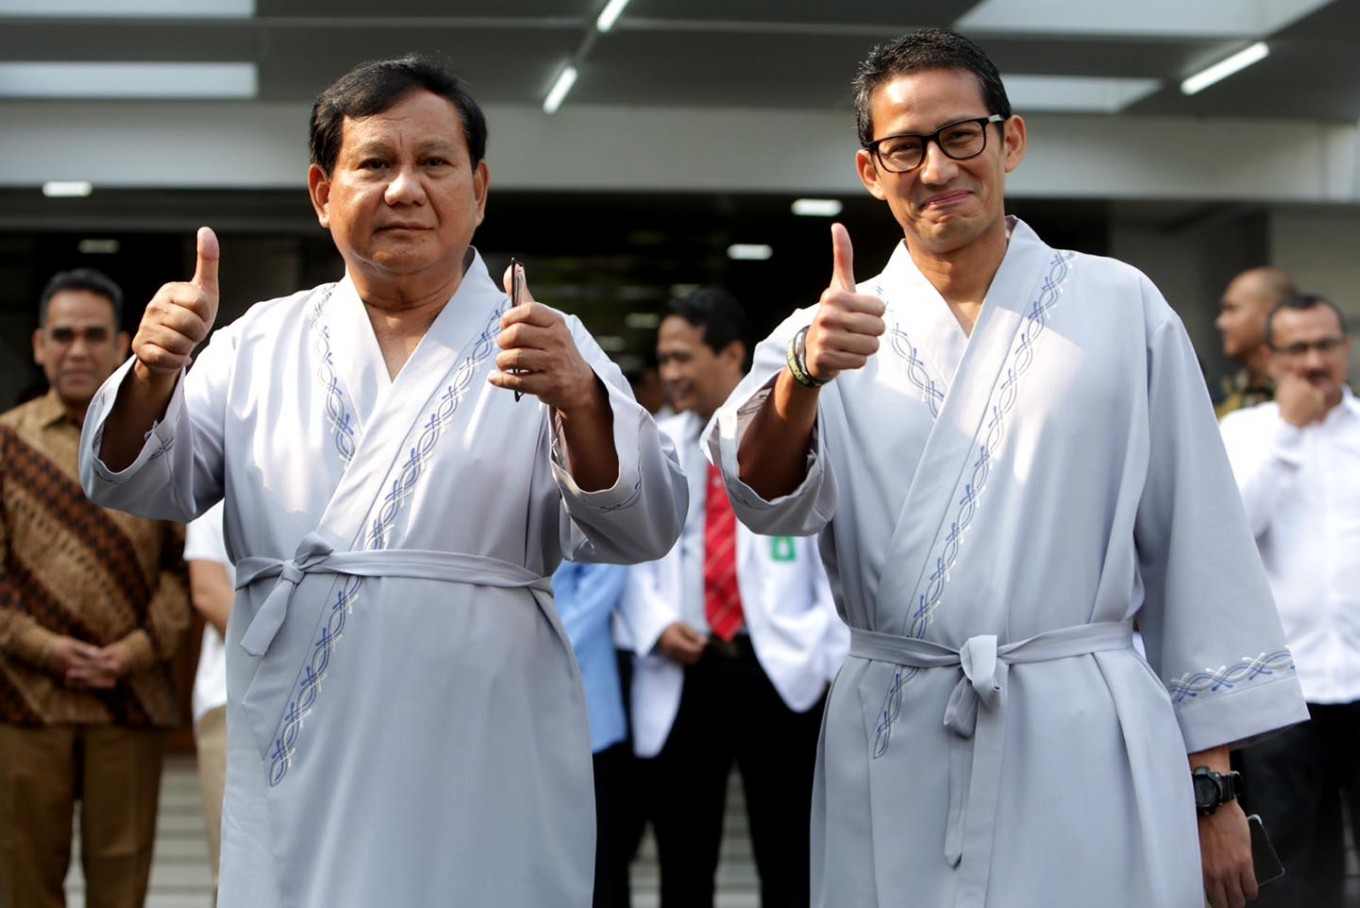 Prabowo-Sandi campaign team upset over cancellation of pre-debate event